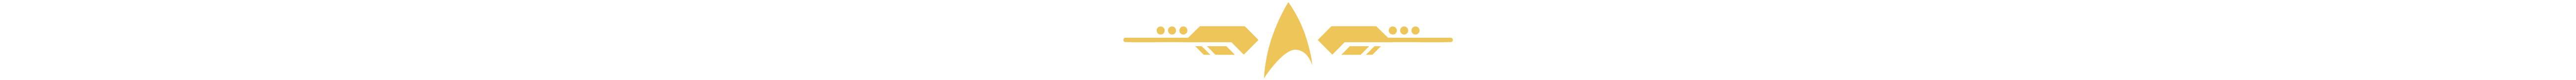 Alliances and Rivalries of the Star Trek Universe